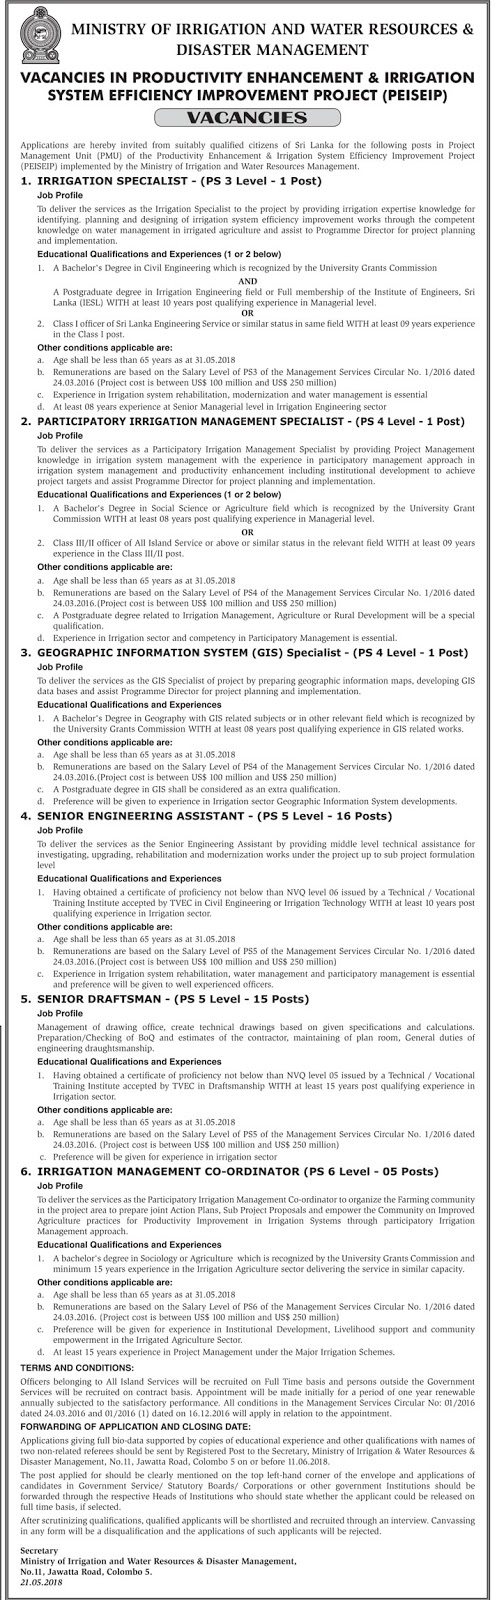 Irrigation Management Coordinator, Senior Draftsman, Senior Engineering Assistant, Geographic Information System Specialist, Participatory Irrigation Management Specialist, Irrigation Specialist Vacancies at Ministry of Irrigation and Water Resources & Disaster Management